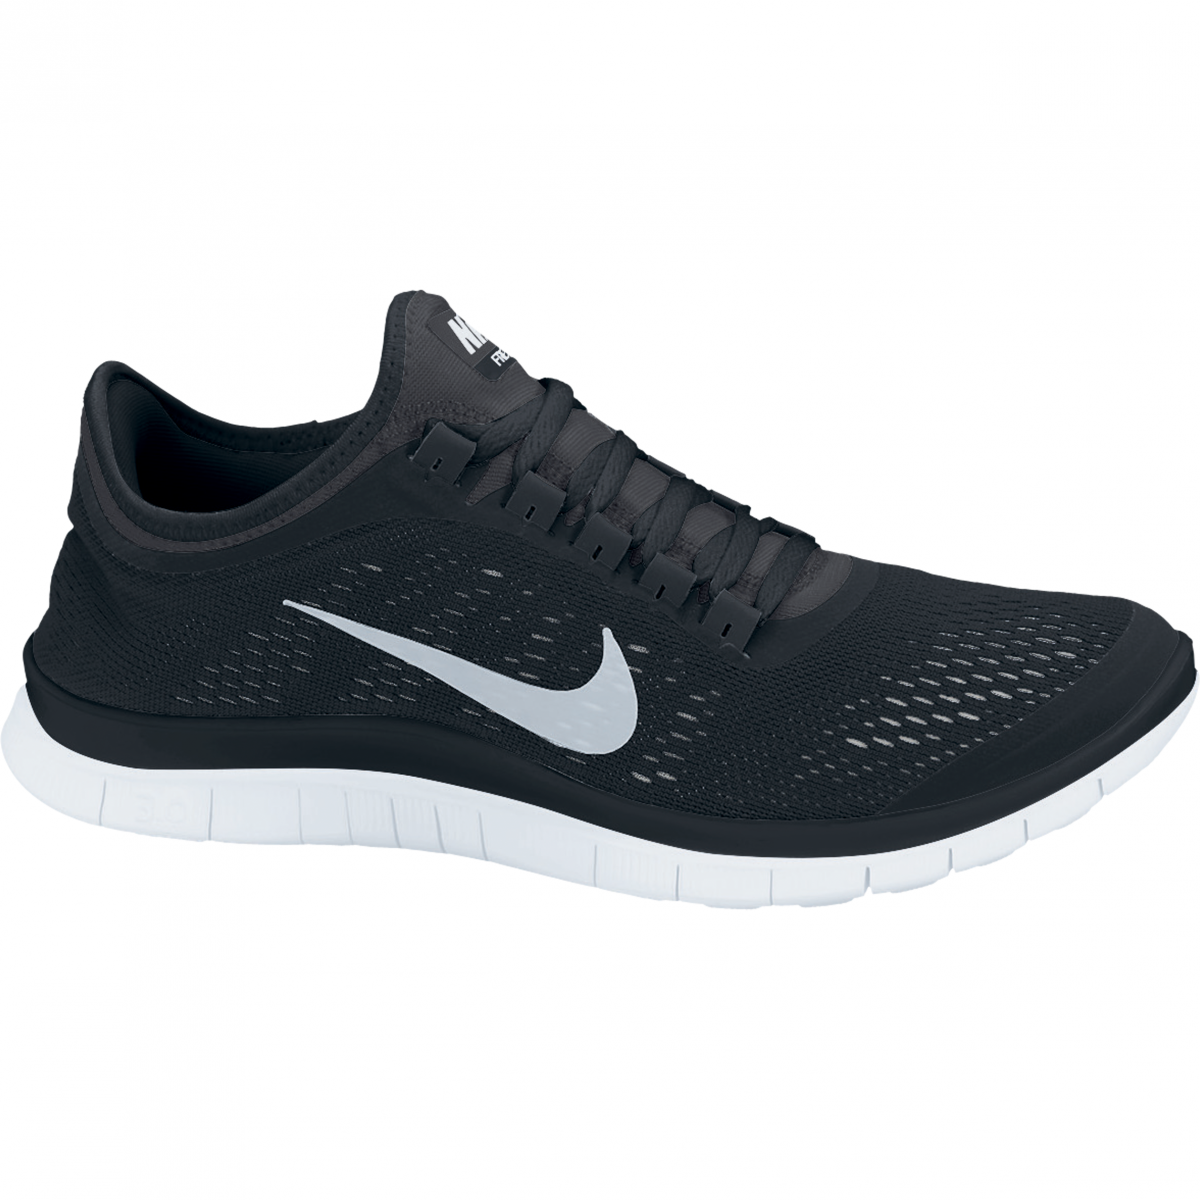 los angeles 16921 91467 Black Fridaynike free 3.0 damen schwarz 39 mens free rn motion flyknit  running shoes